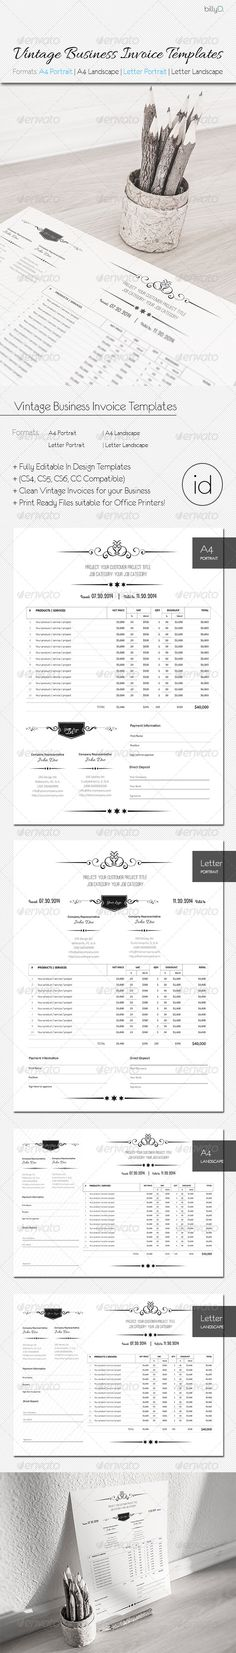 Business Invoice Template #businessinvoice Download   - invoice for business